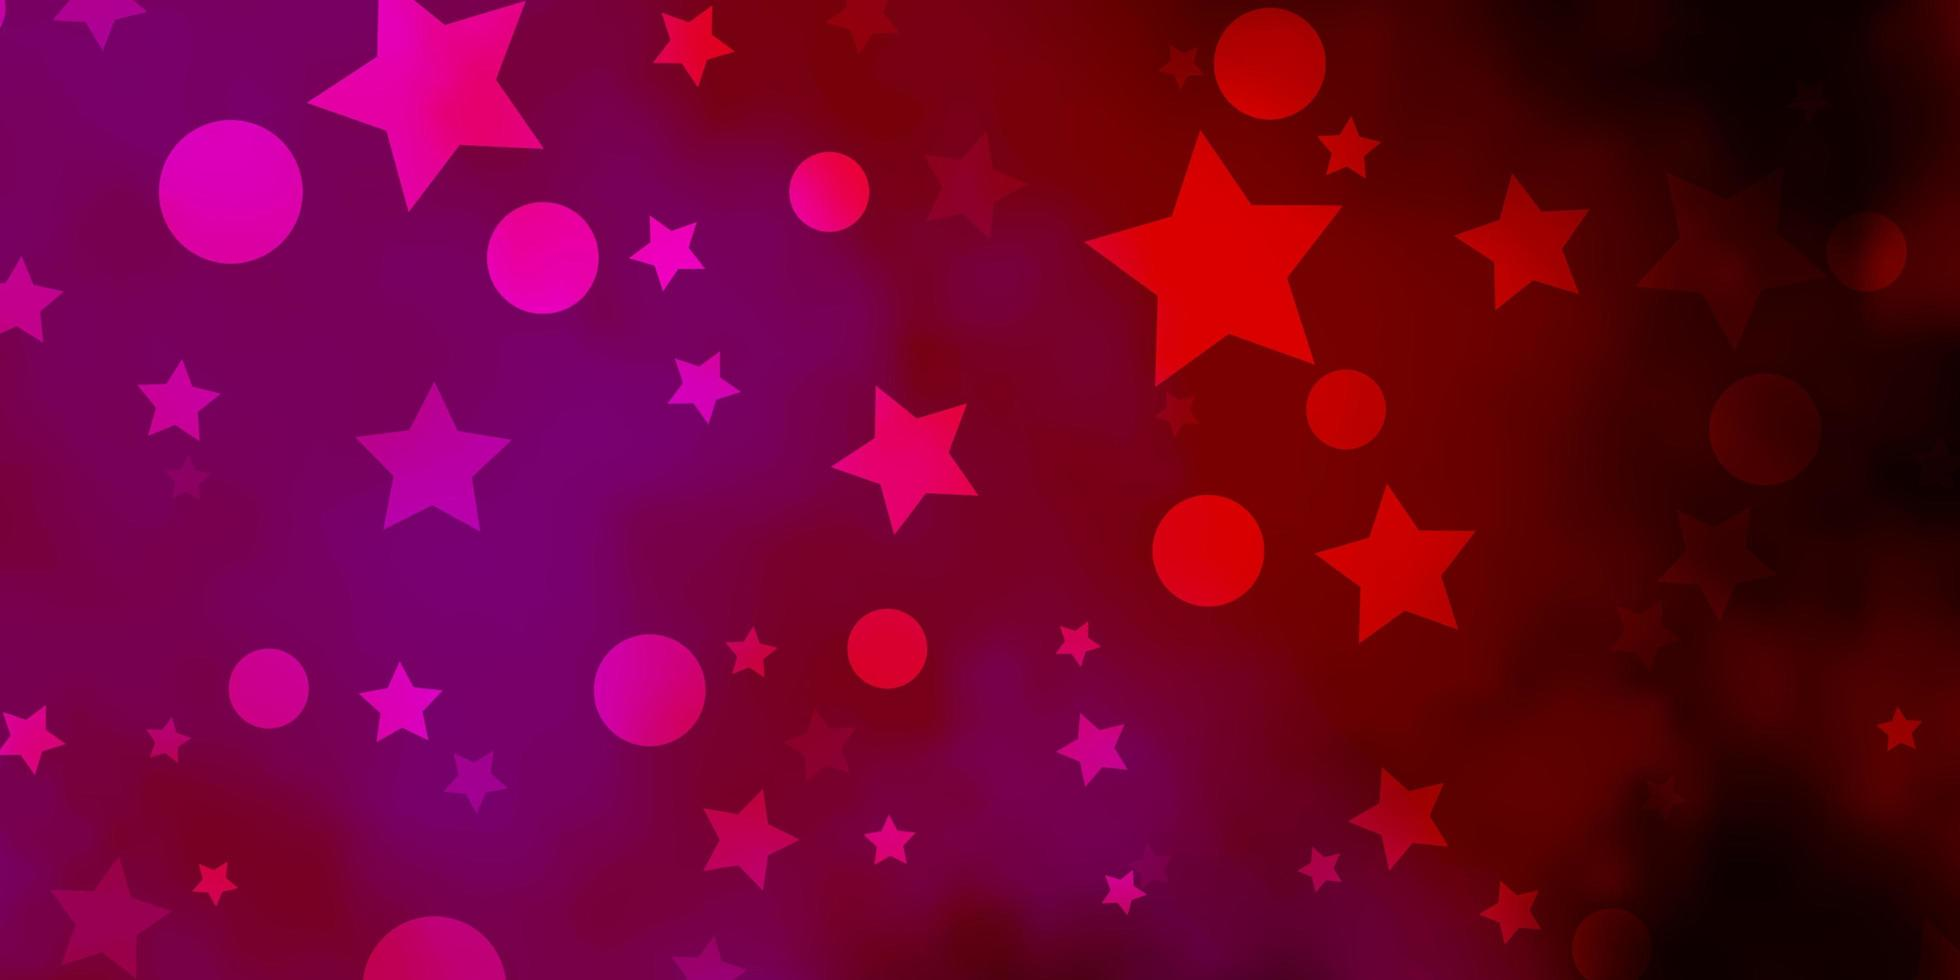 Dark Purple, Pink vector background with circles, stars.